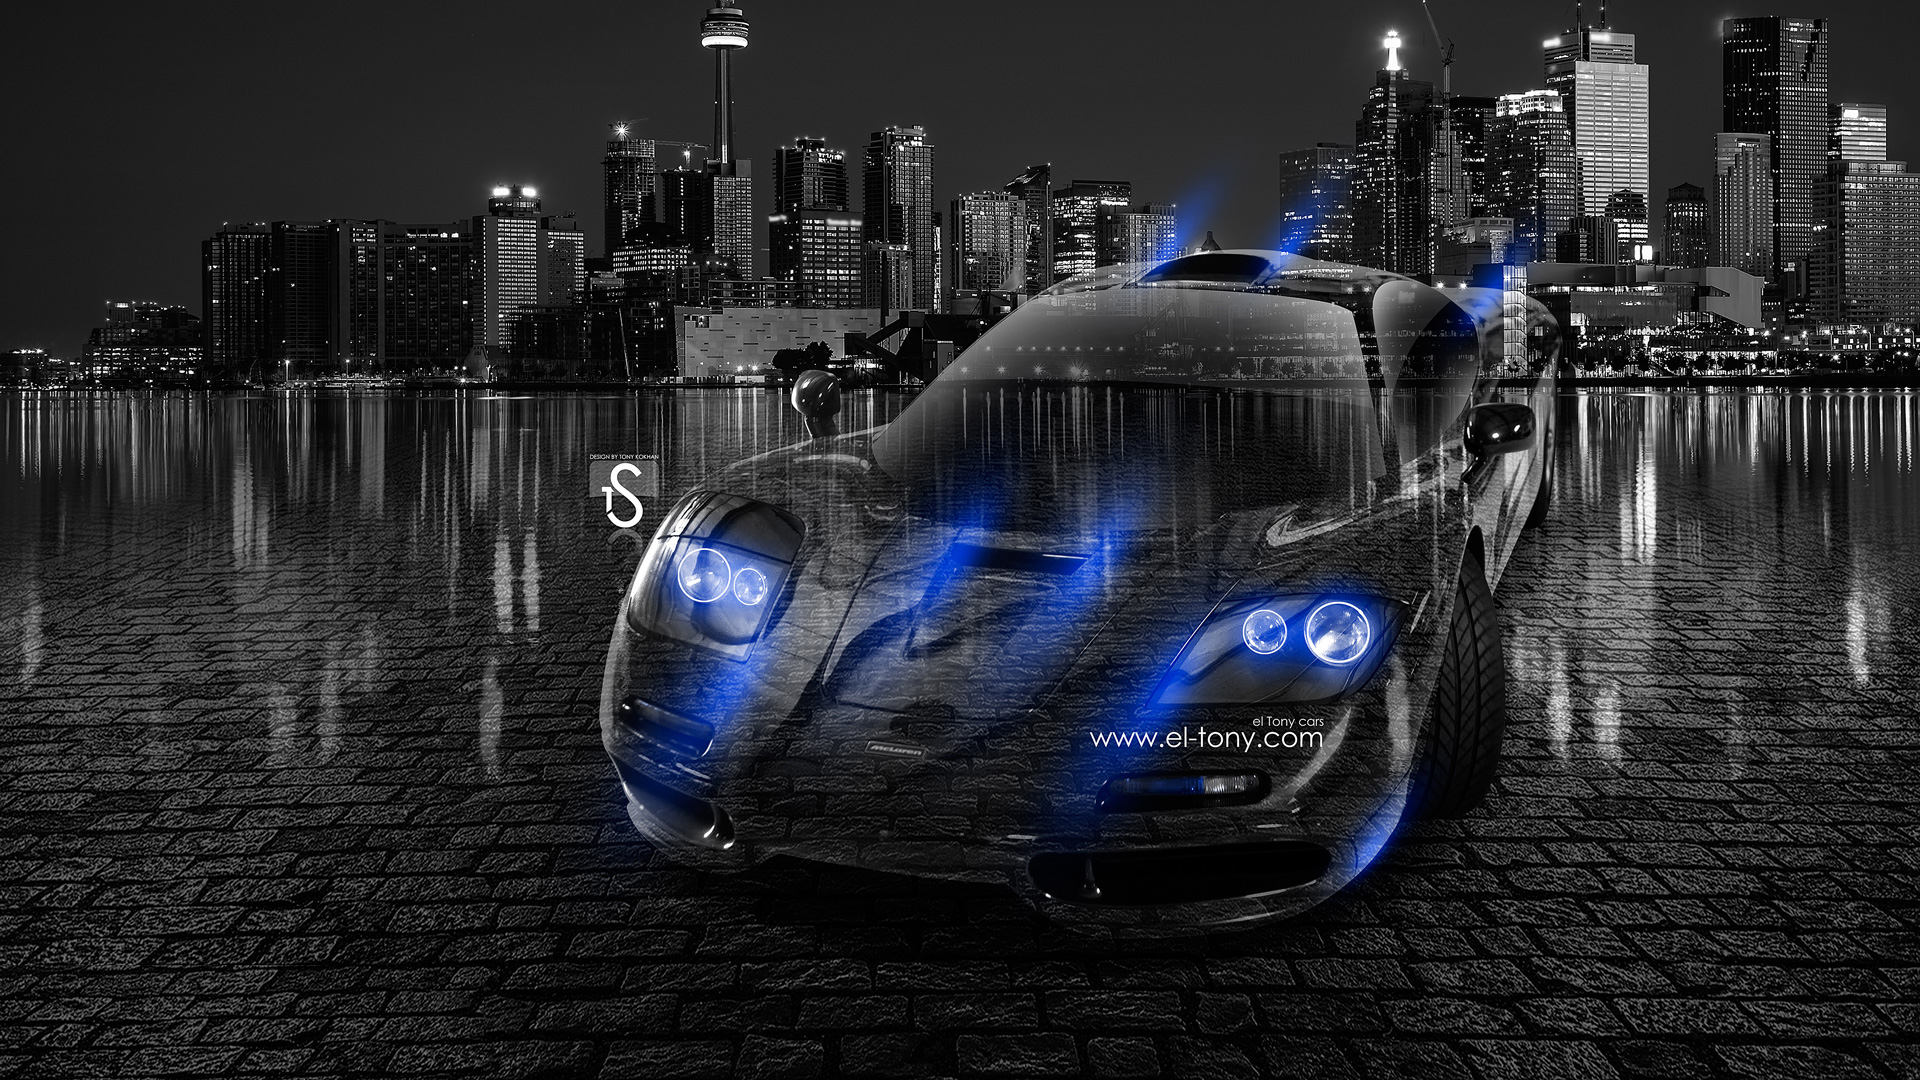 Great Charmant McLaren F1 Crystal City Car 2013 Blue Neon .